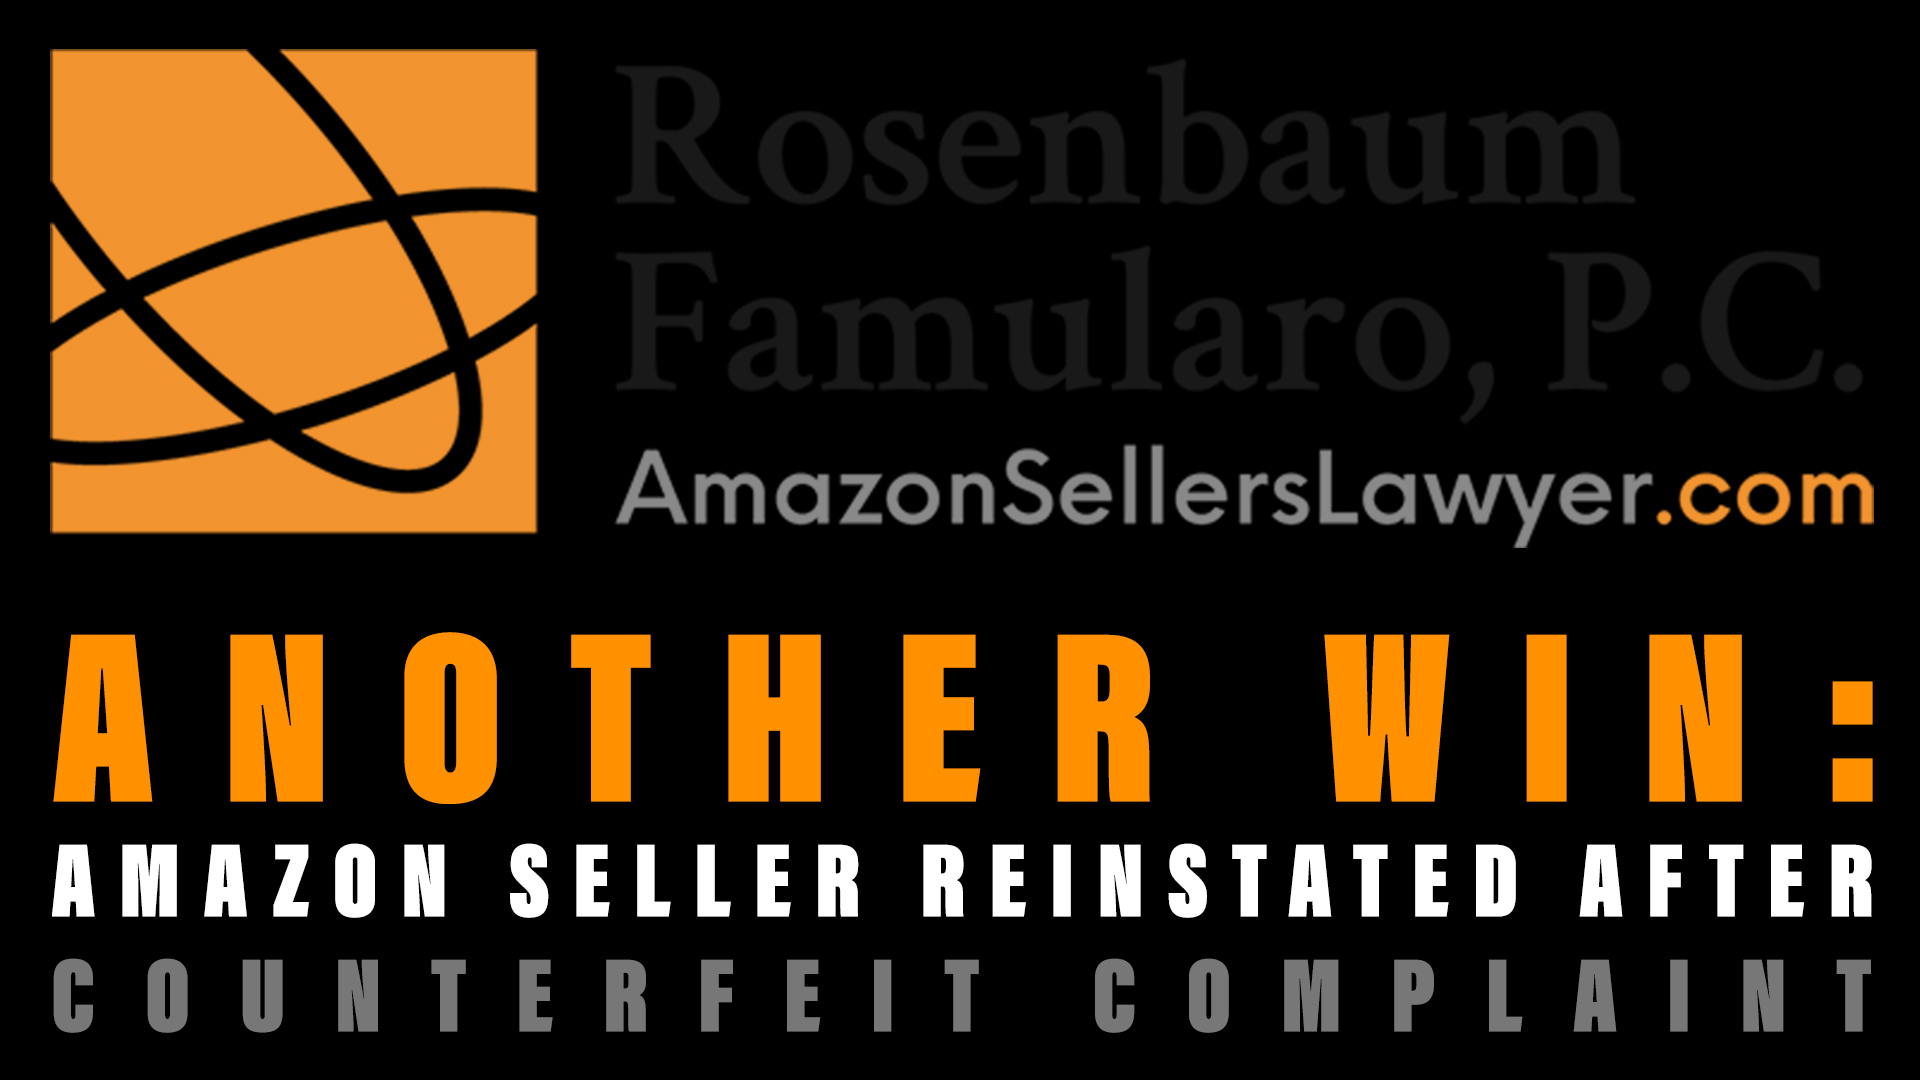 Amazon Seller Reinstated after Counterfeit Complaint Suspension